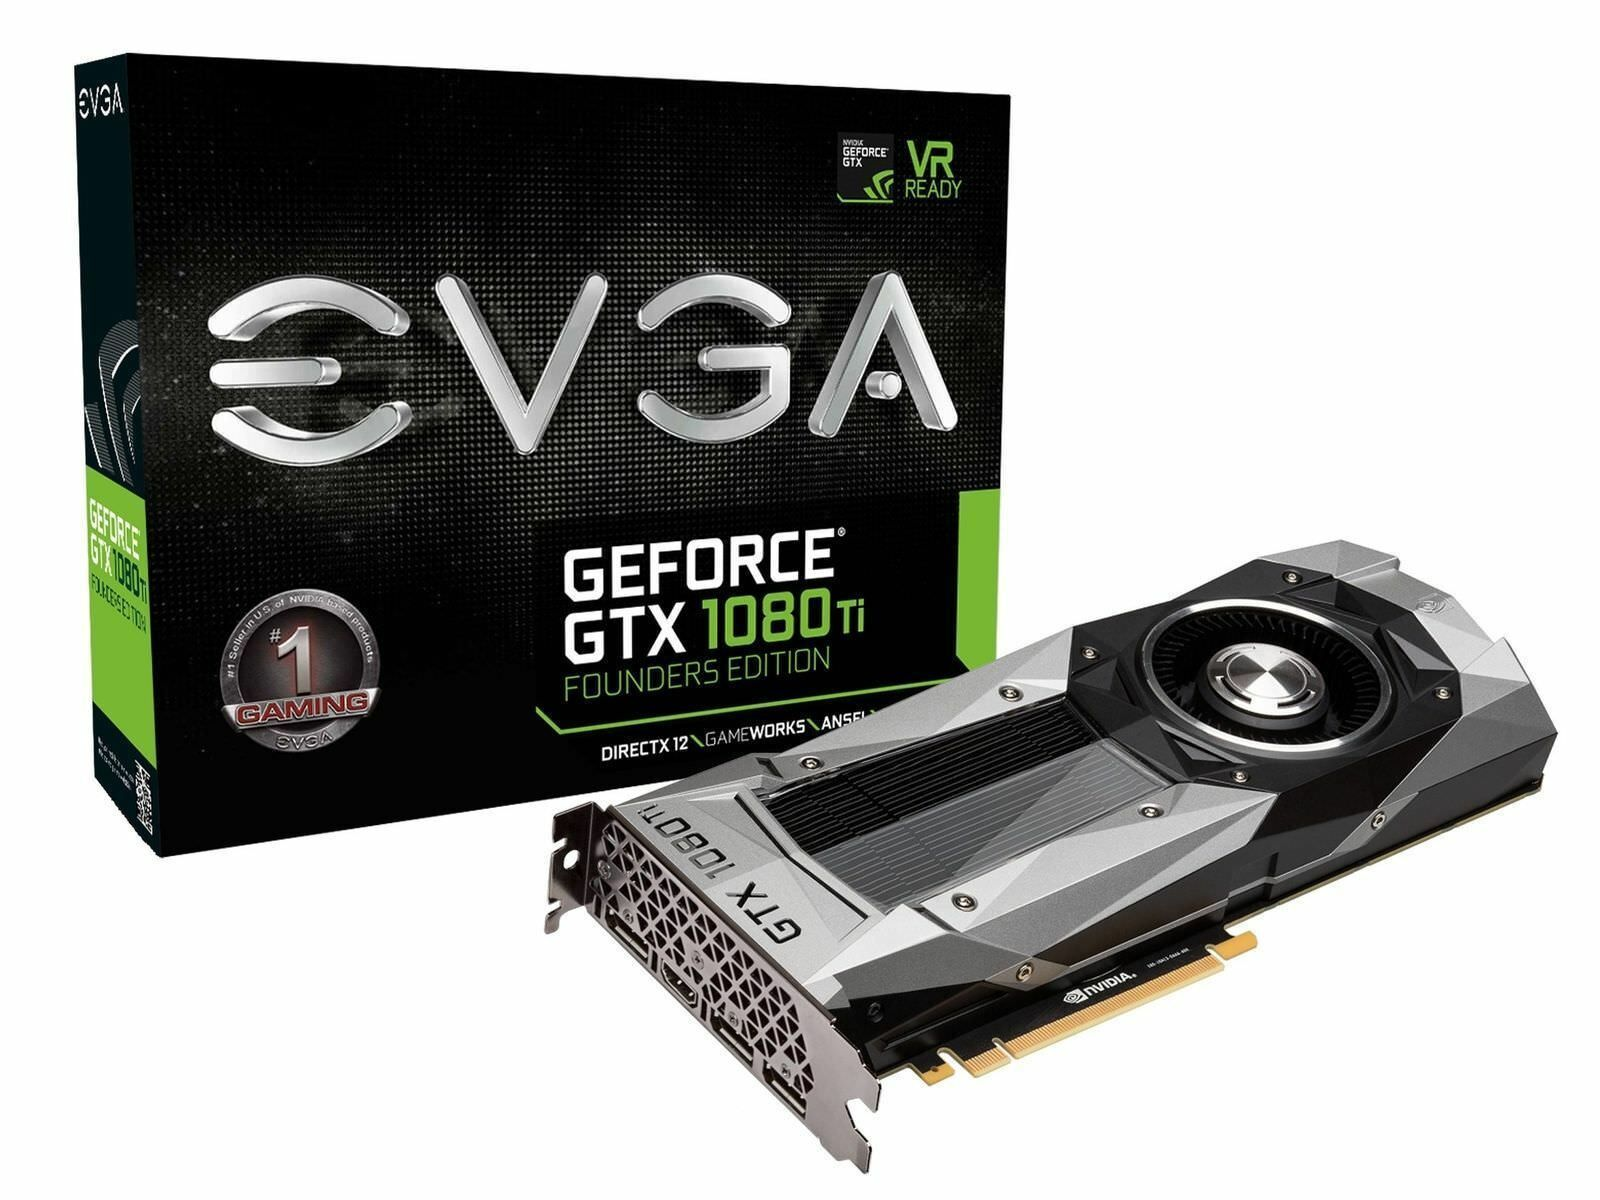 Evga Geforce Gtx 1080 Ti Founders Edition Gaming 11gb Gddr5x Graphic Cards Graphic Card Cards Computer Accessories